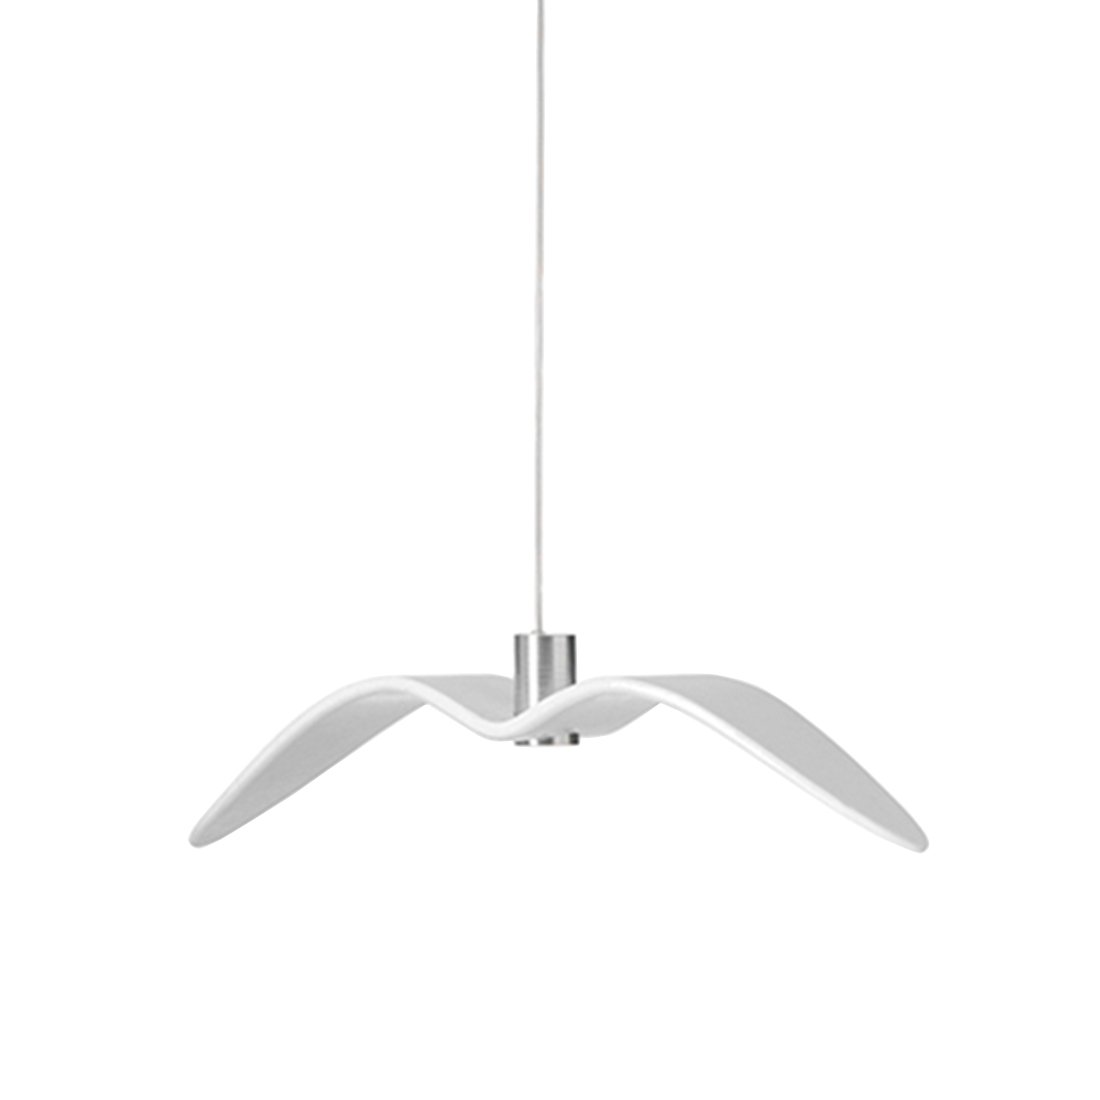 Brokis Night Birds Hanglamp Wit 1